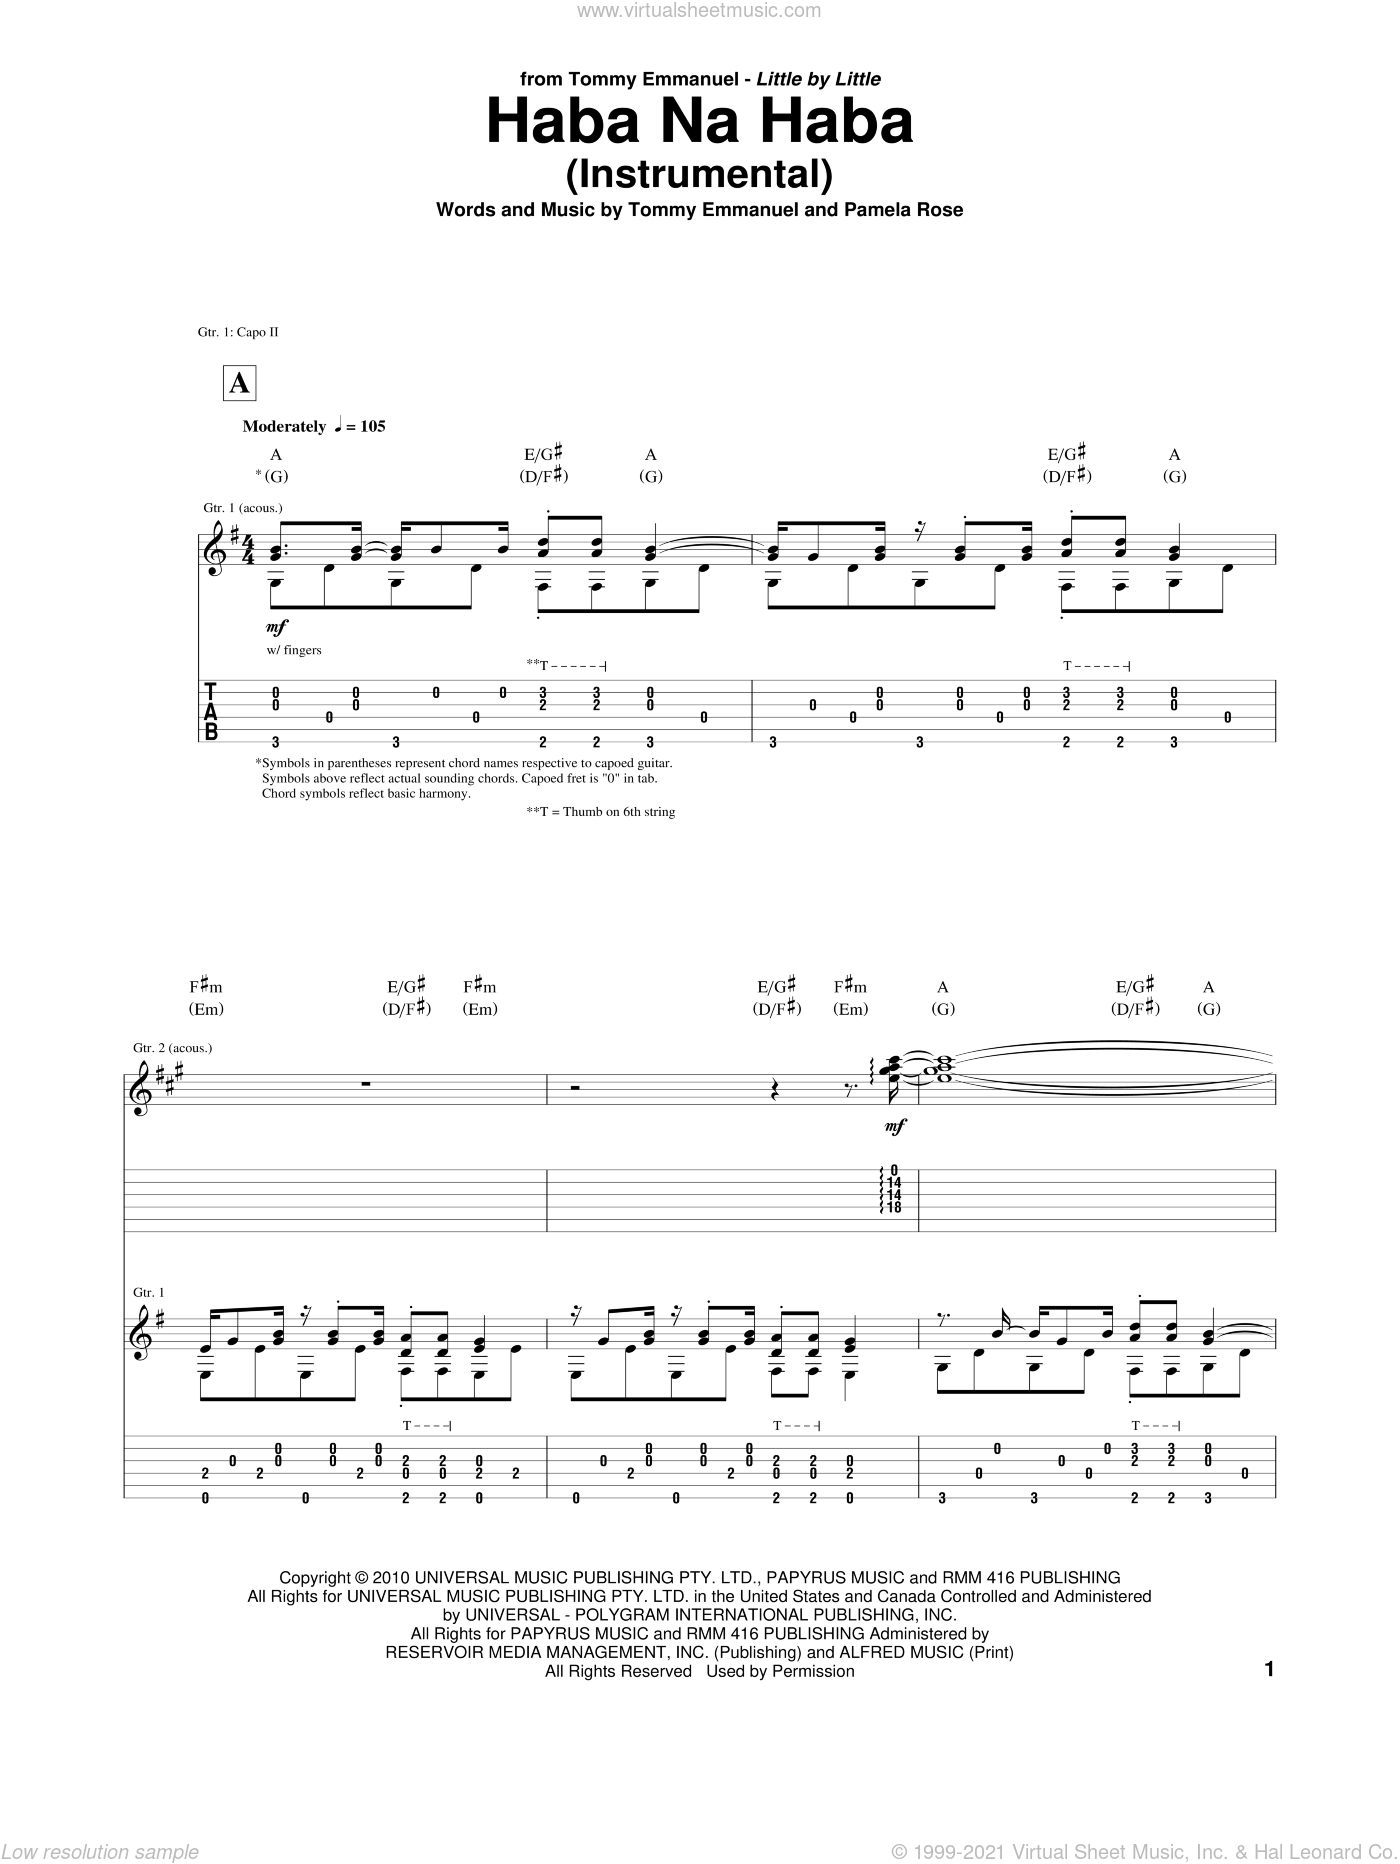 Haba Na Haba sheet music for guitar (tablature) by Tommy Emmanuel. Score Image Preview.